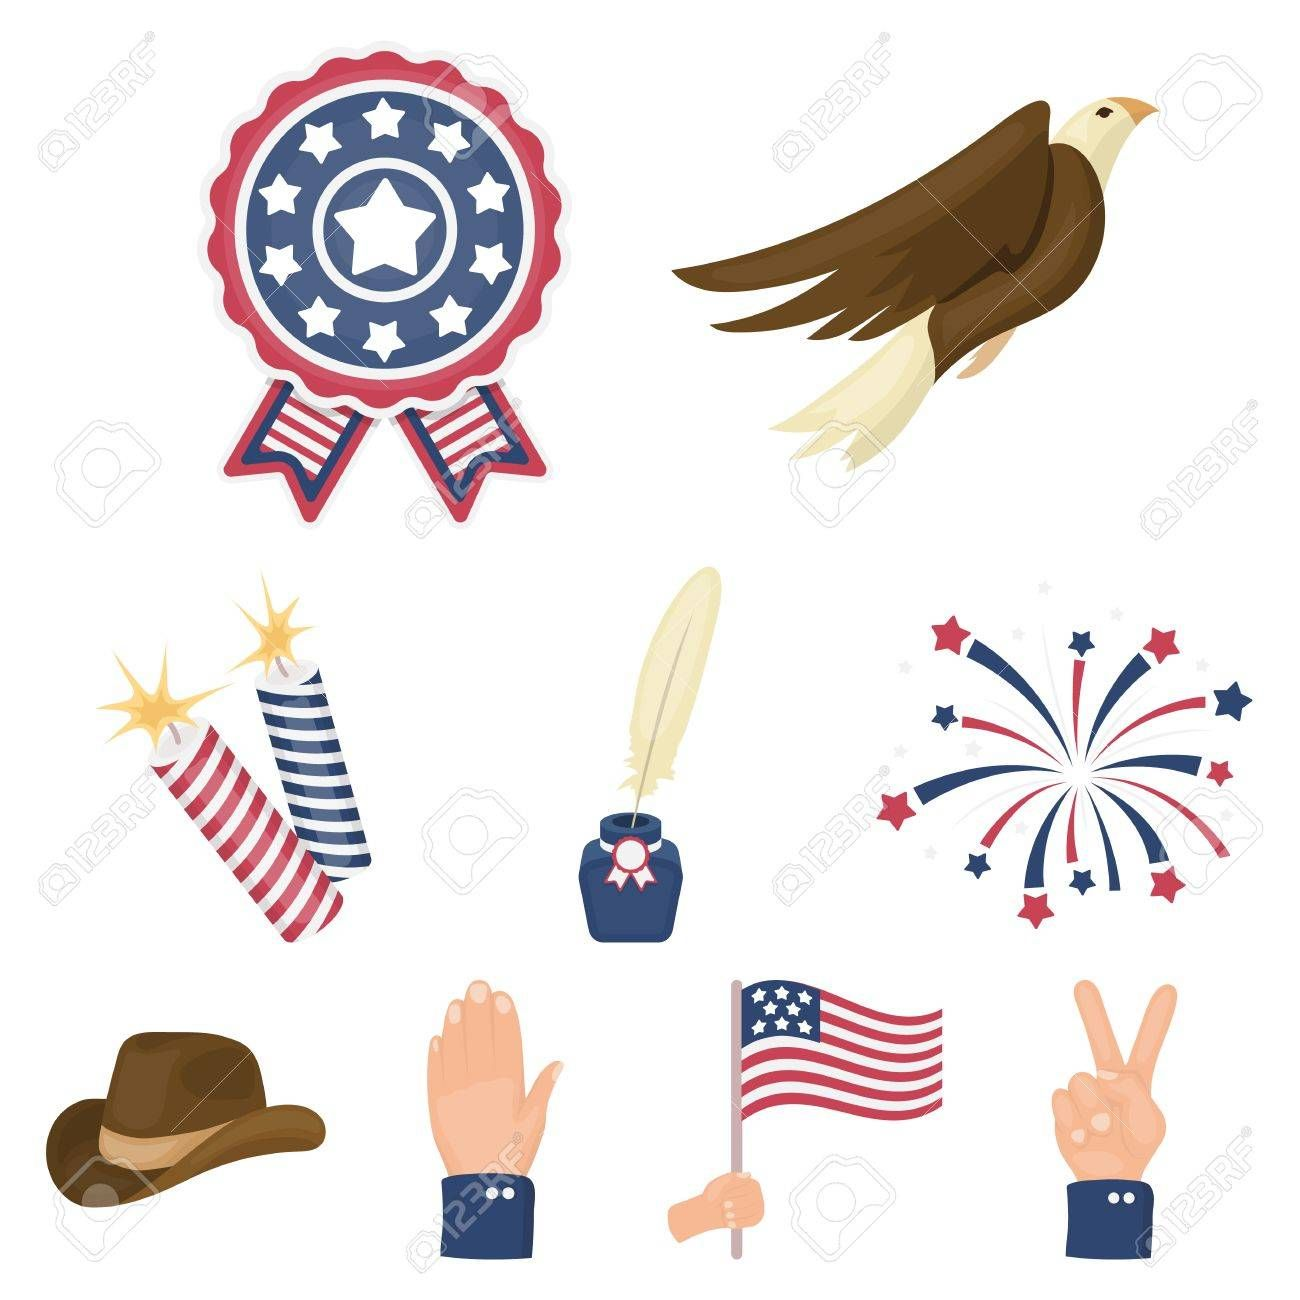 Patriot Day set icons in cartoon style Illustration